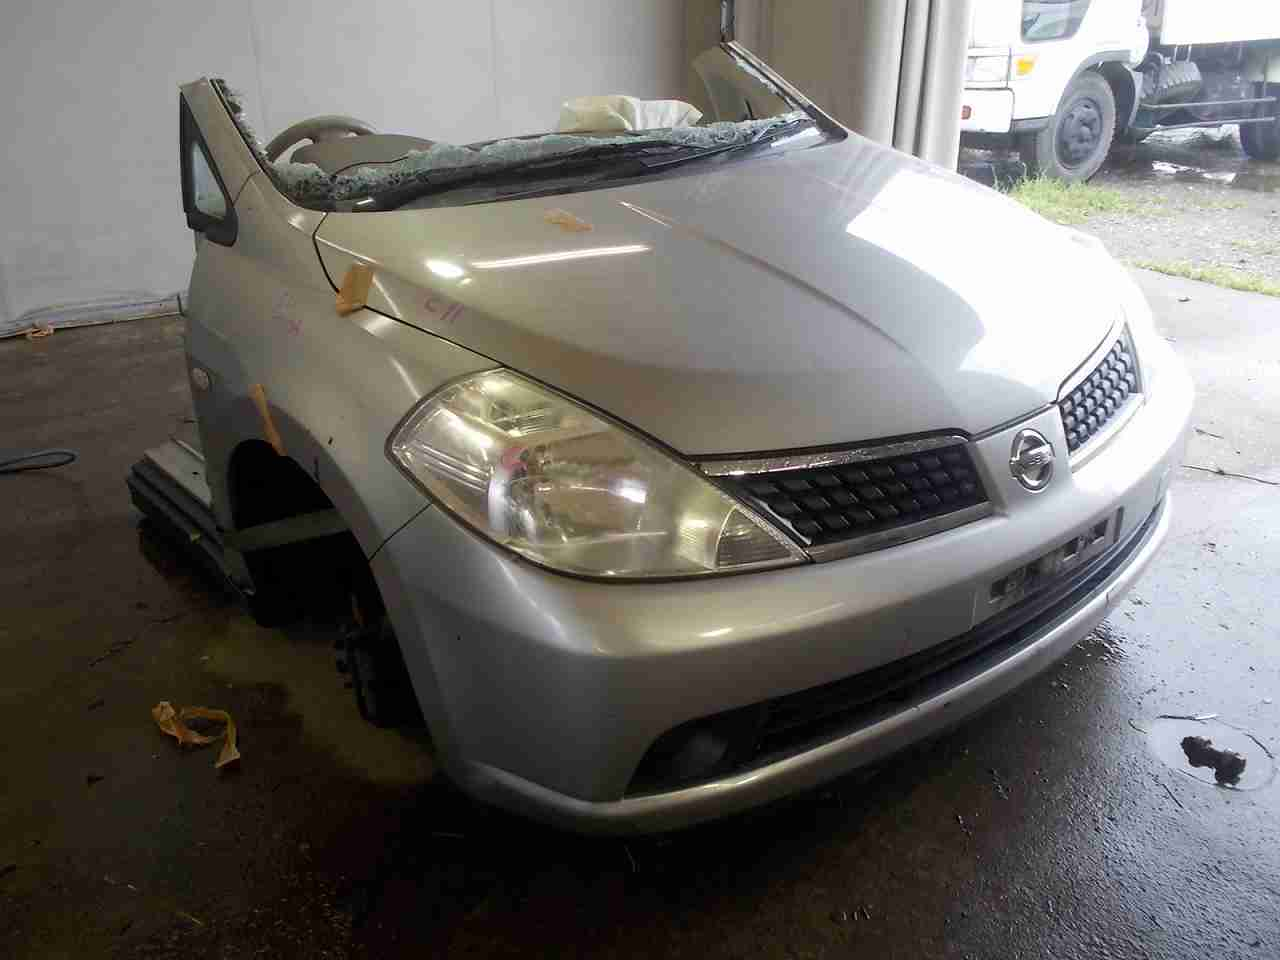 Nissan / Tiida ready for parts